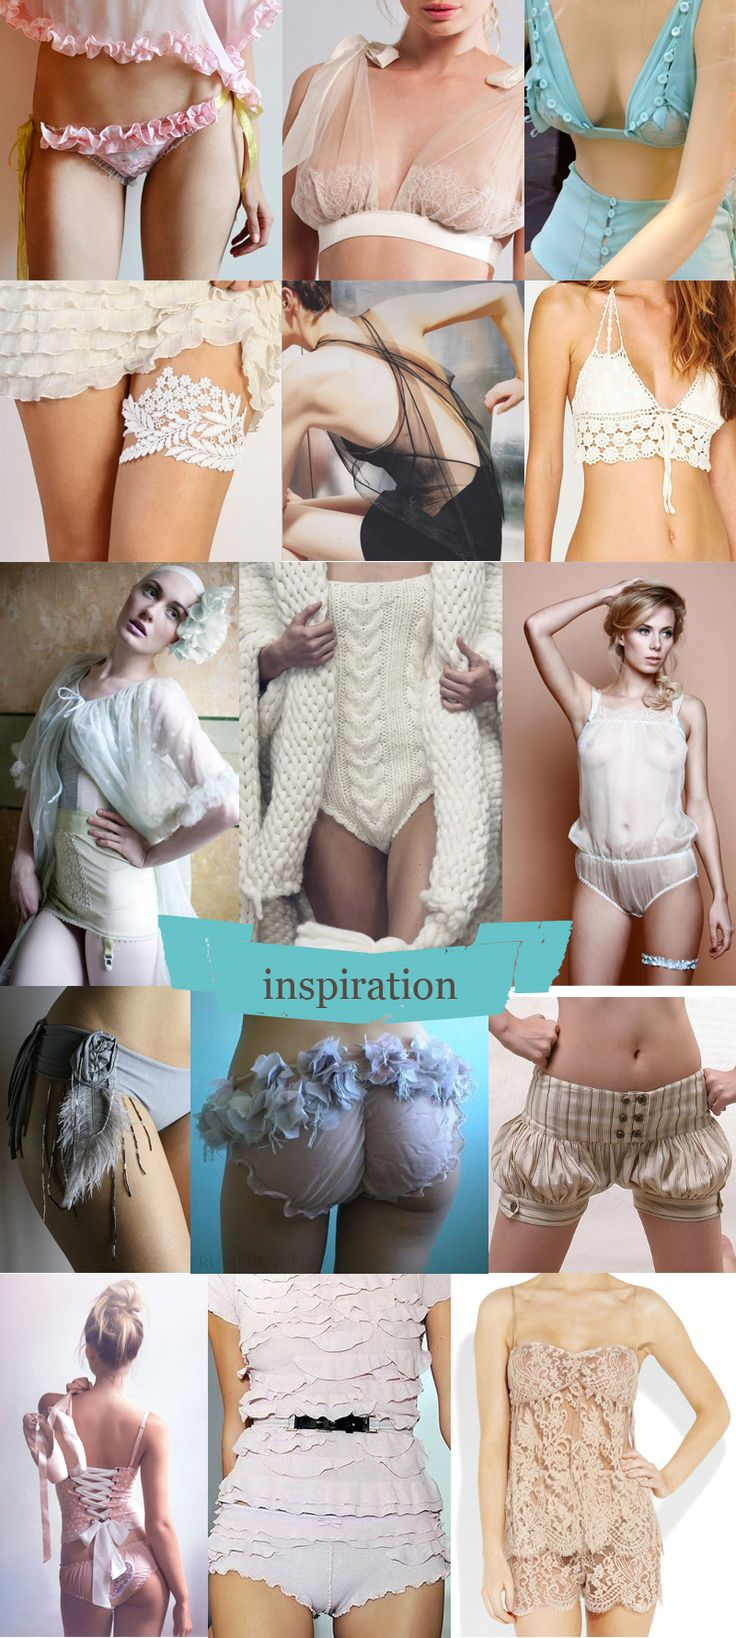 Moline-Mercerie-inspiration-lingerie-fait-main-salon-international-de-la-lingerie